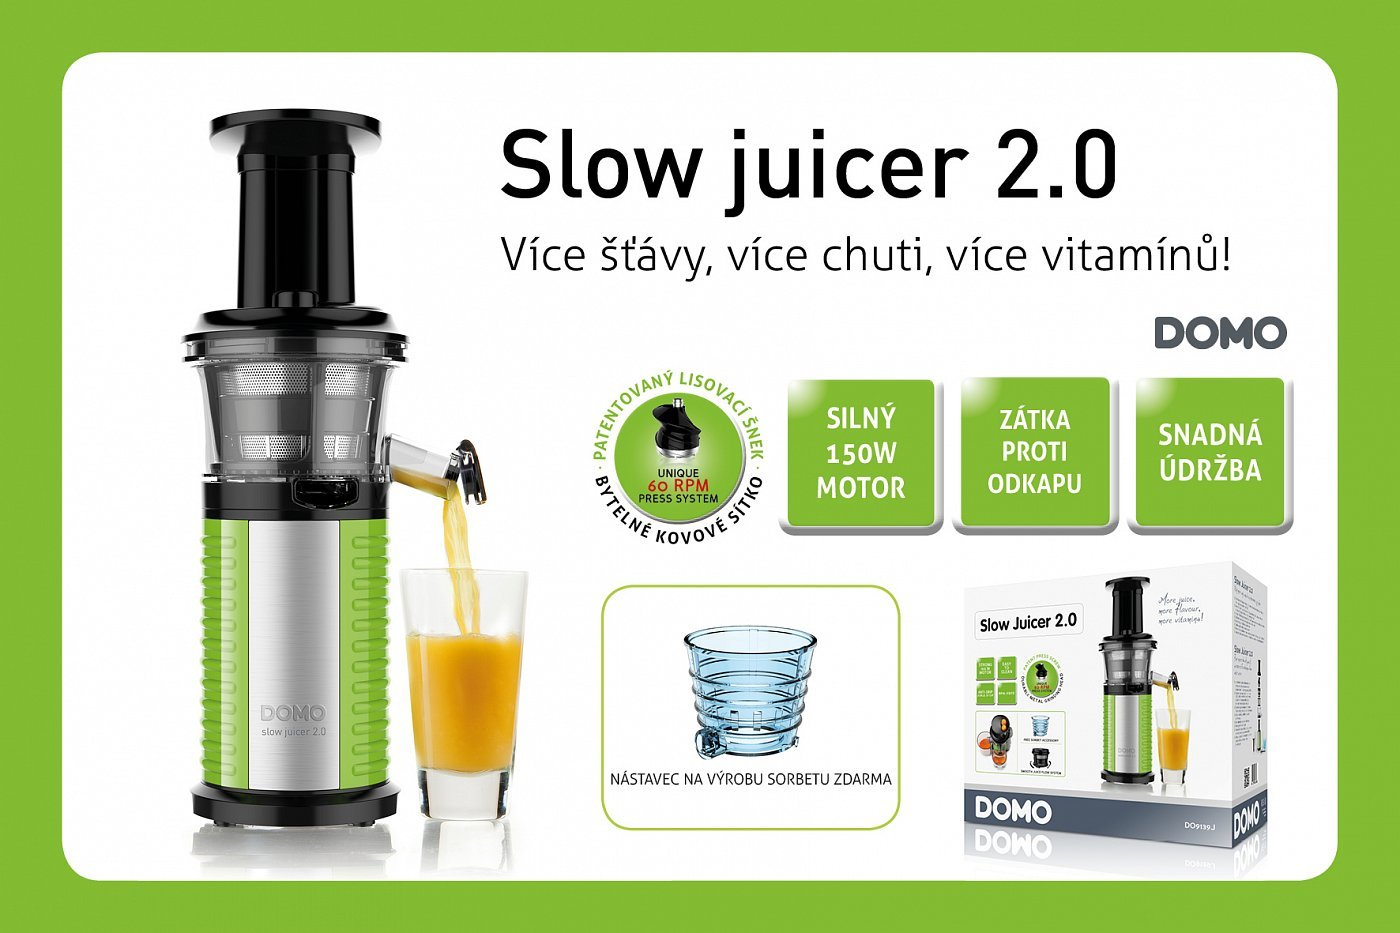 DOMO DO9139J od??av?ova? Slow Juicer 2.0 Helkon.cz